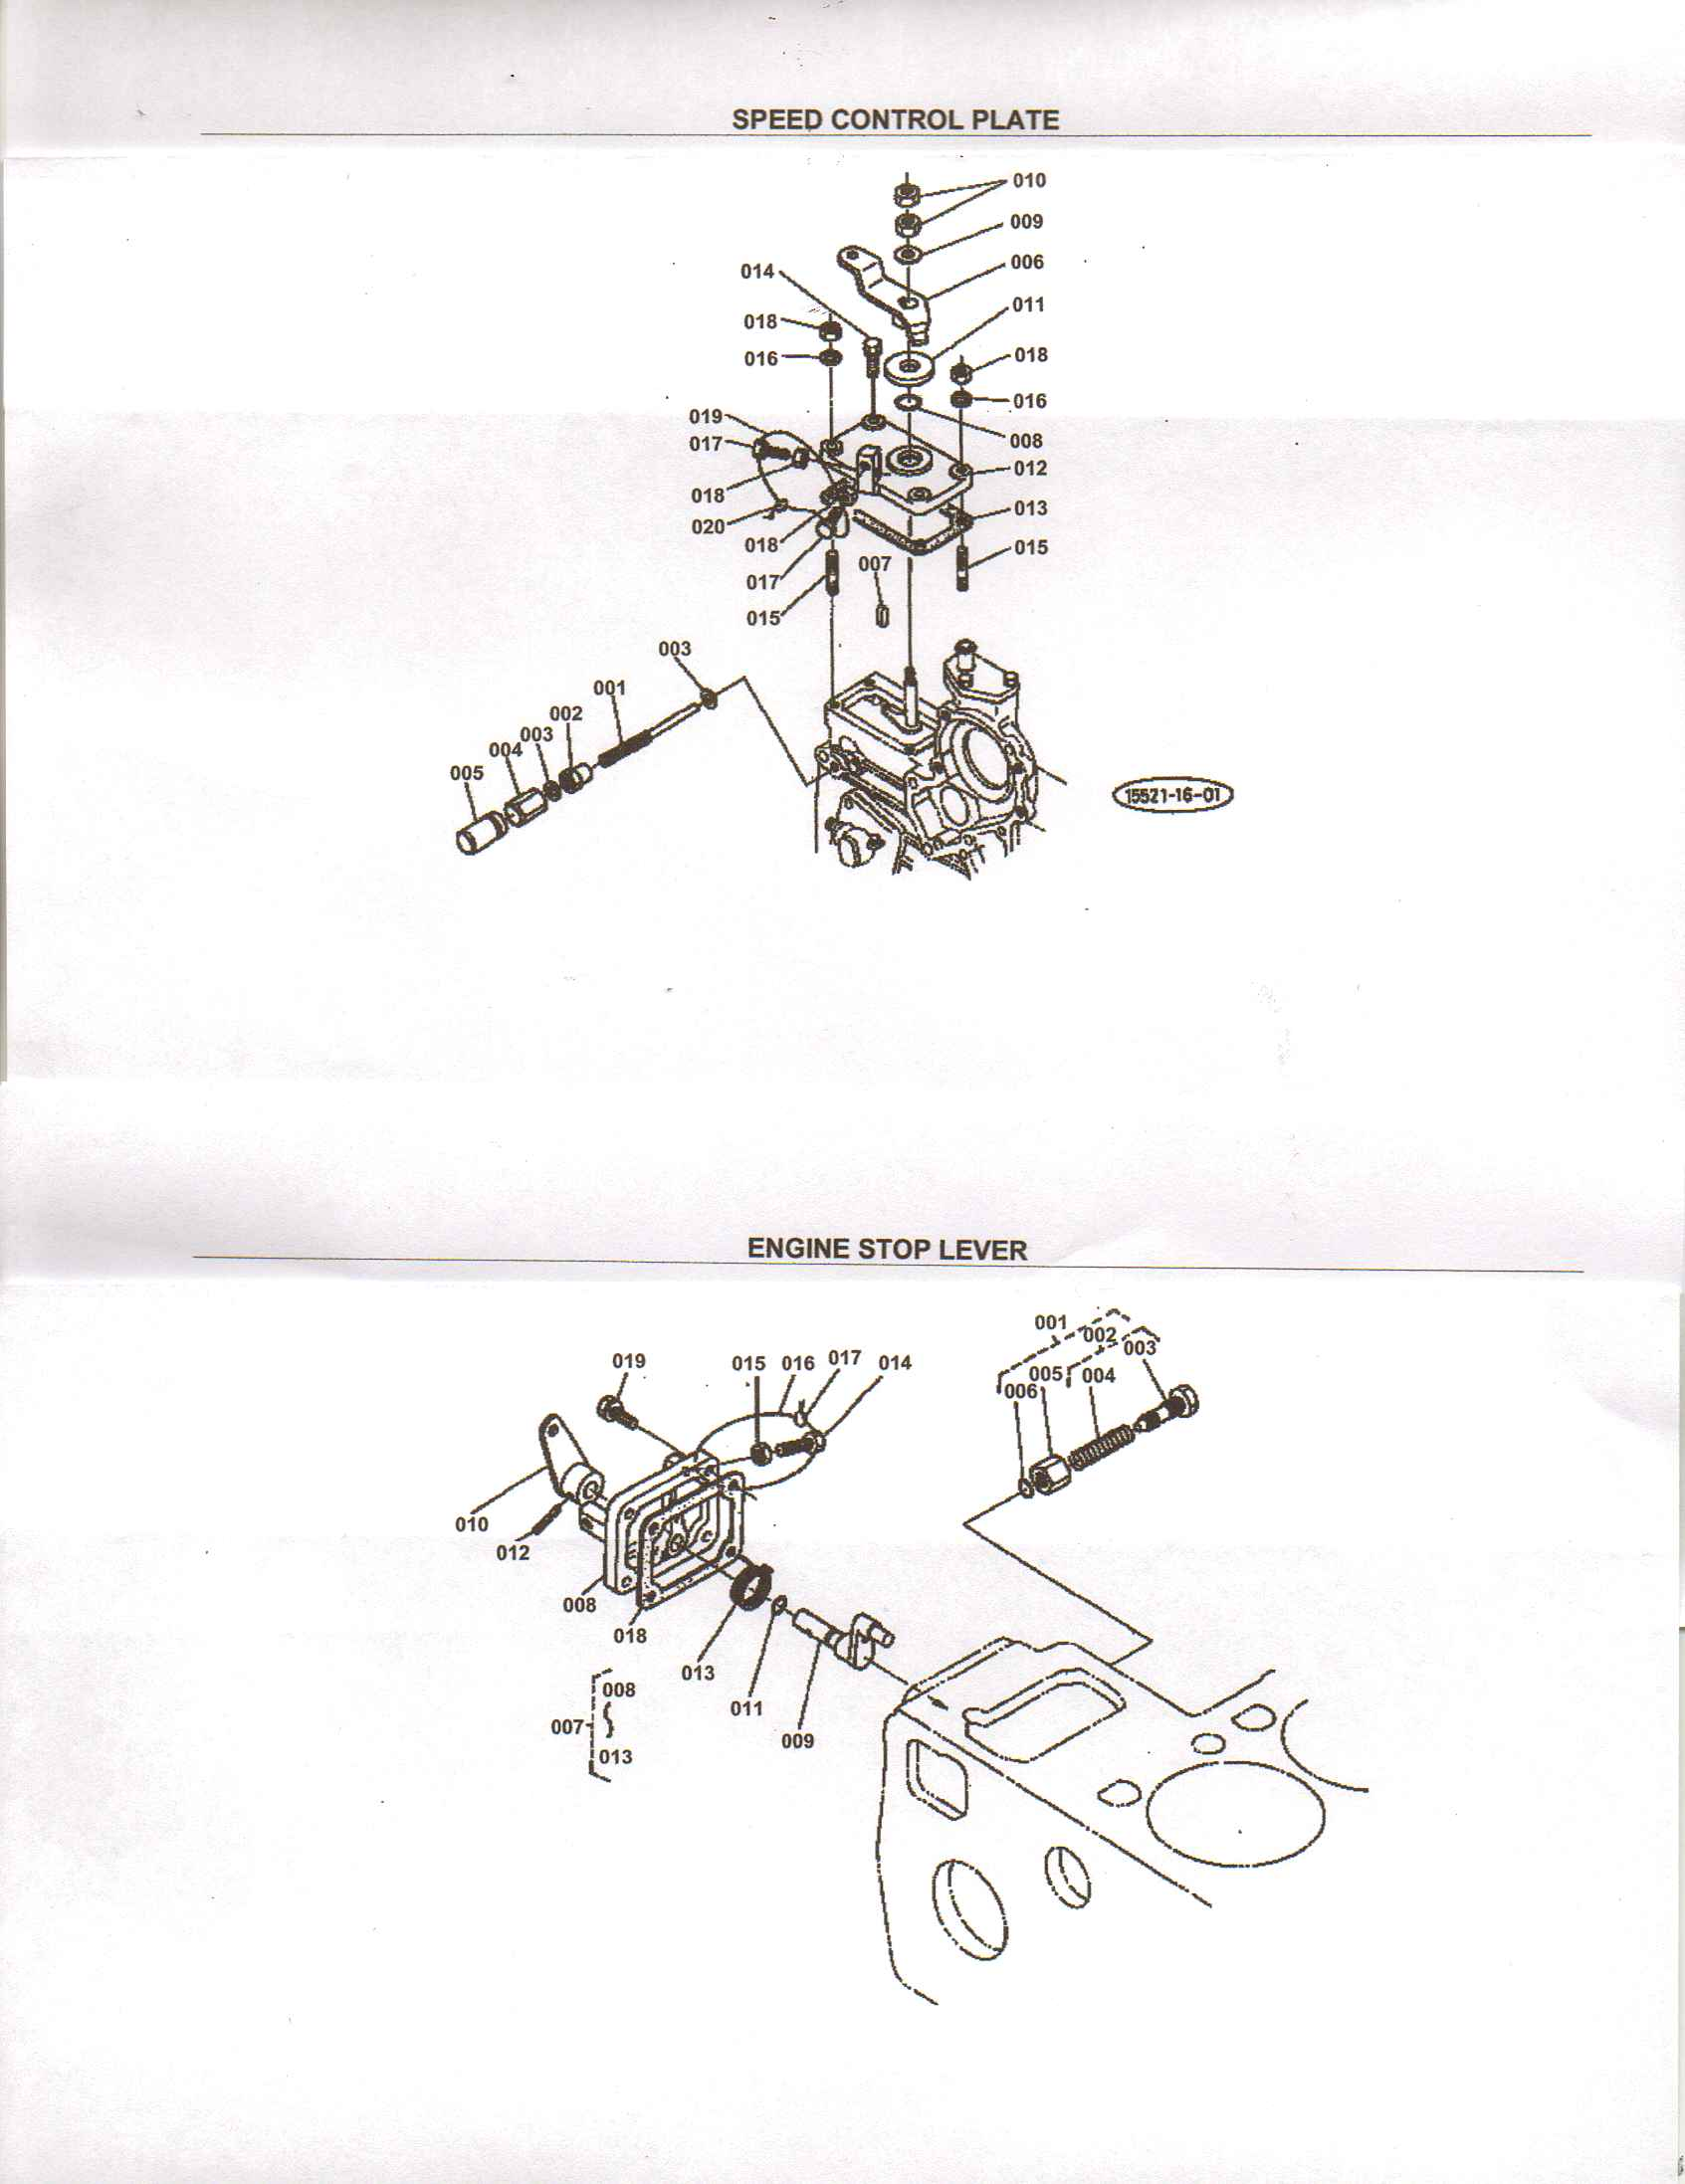 Kubota G6200 Wiring Diagram G1800 L2850 T1760 Parts And Engine On